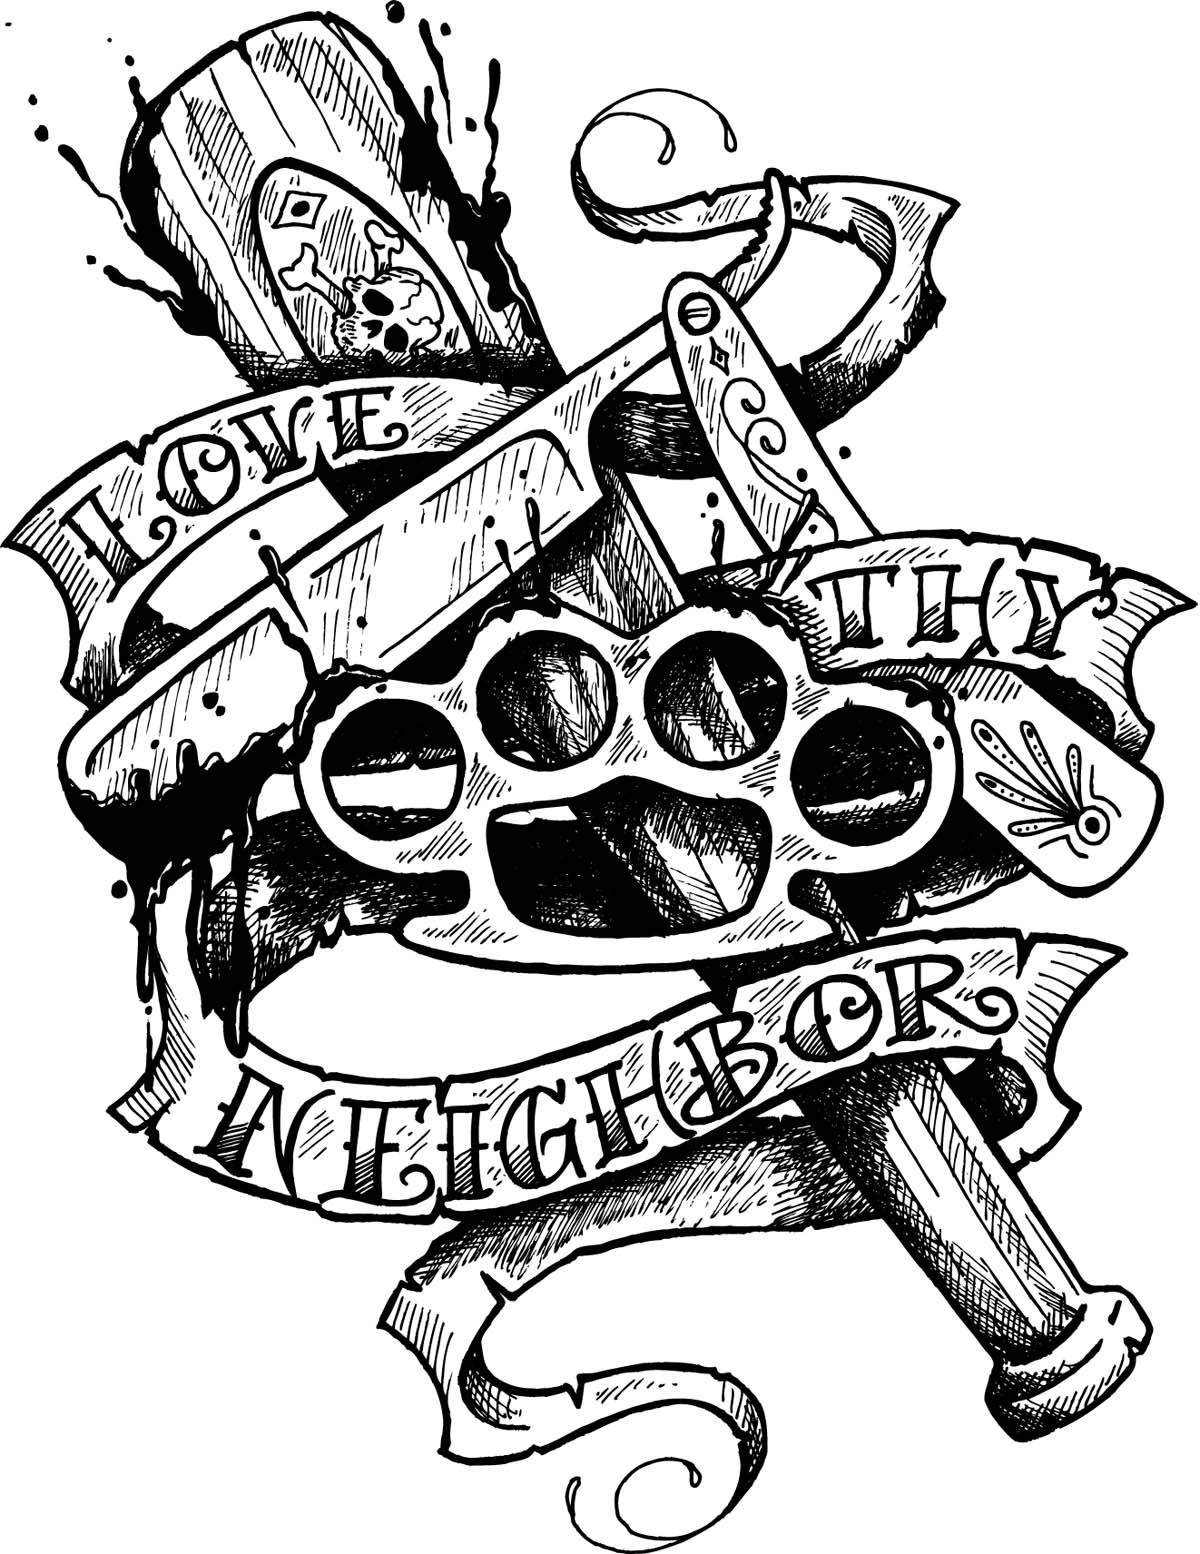 Cool Knife n Dagger Tattoo Design photo - 1